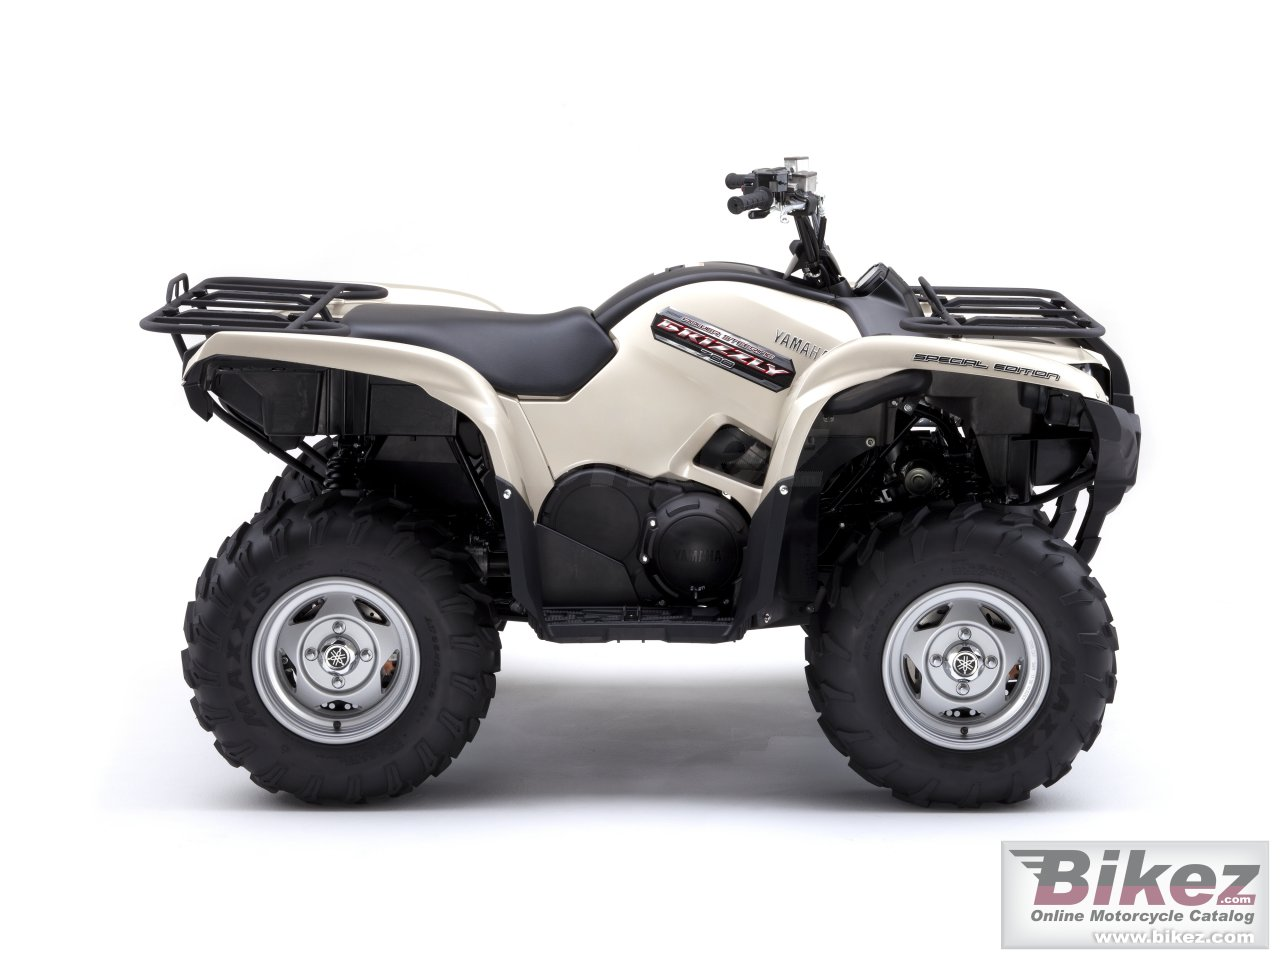 Big Yamaha grizzly 700 fi auto 4x4 eps se picture and wallpaper from Bikez.com